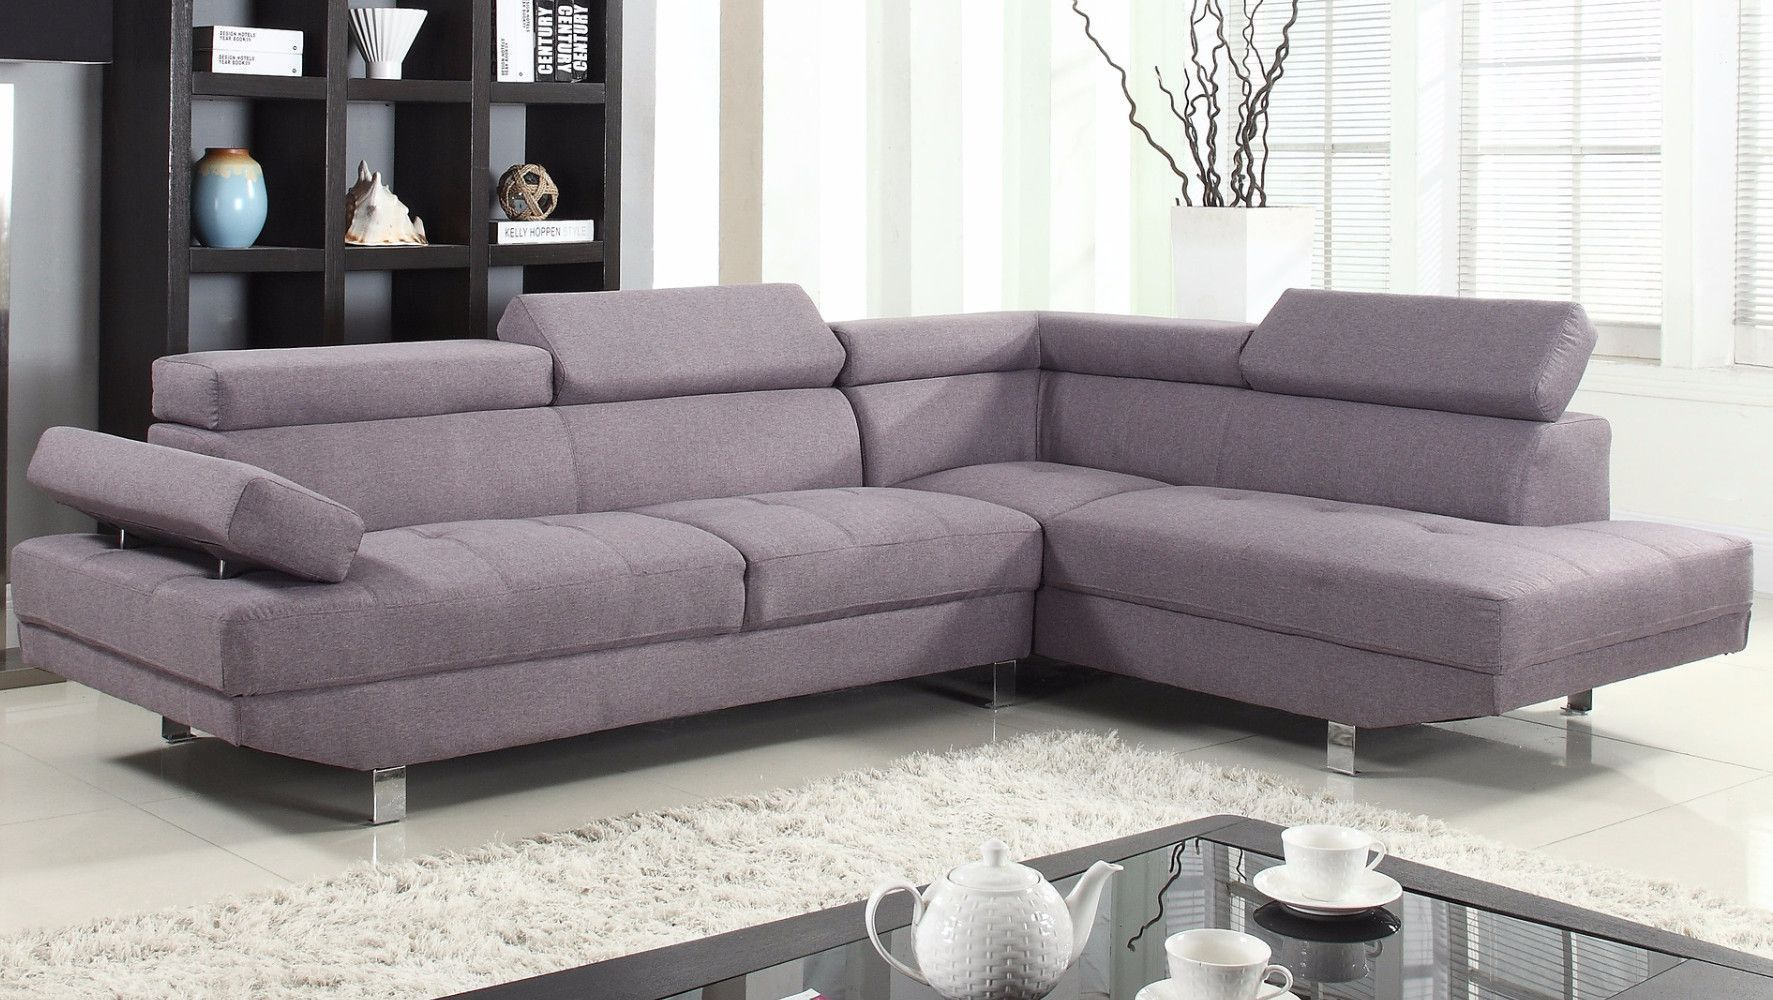 2 Piece Modern Linen Fabric Right Facing Chaise Sectional In 2Pc Burland Contemporary Chaise Sectional Sofas (View 2 of 15)